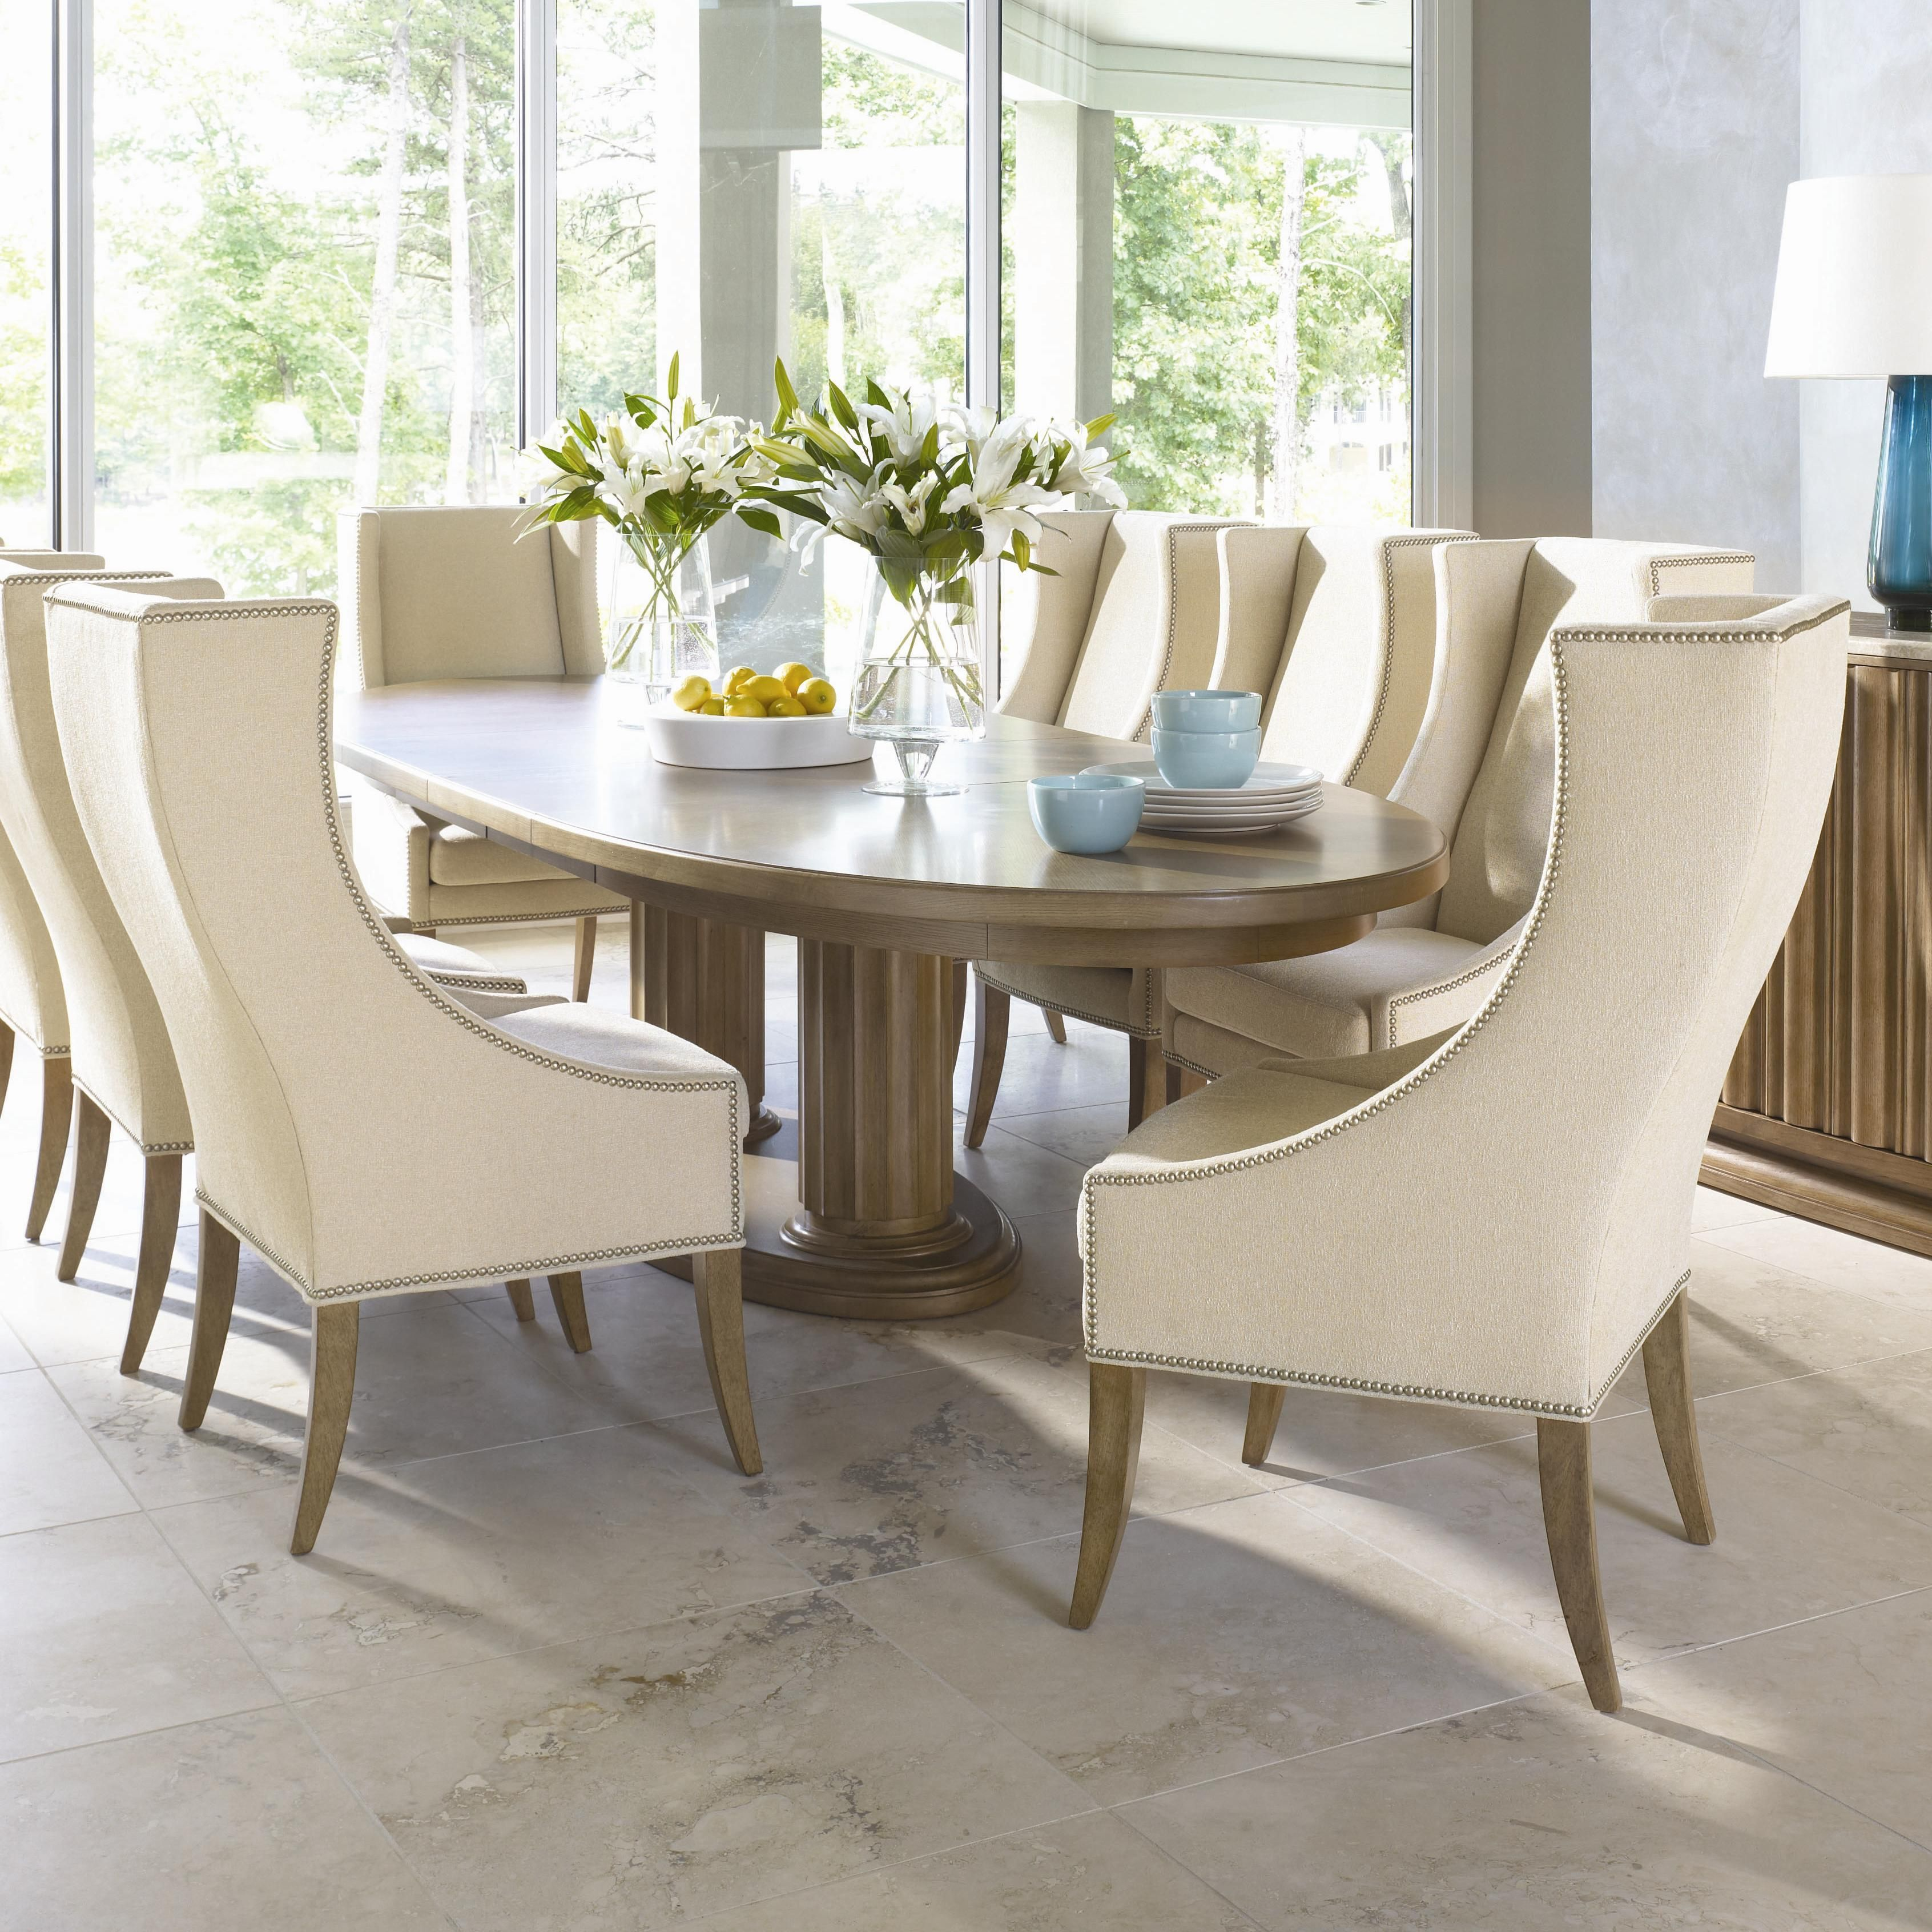 Monterey 9 Piece Table And Chair Setbernhardt  Kensington Inspiration Dining Room Upholstered Chairs Review